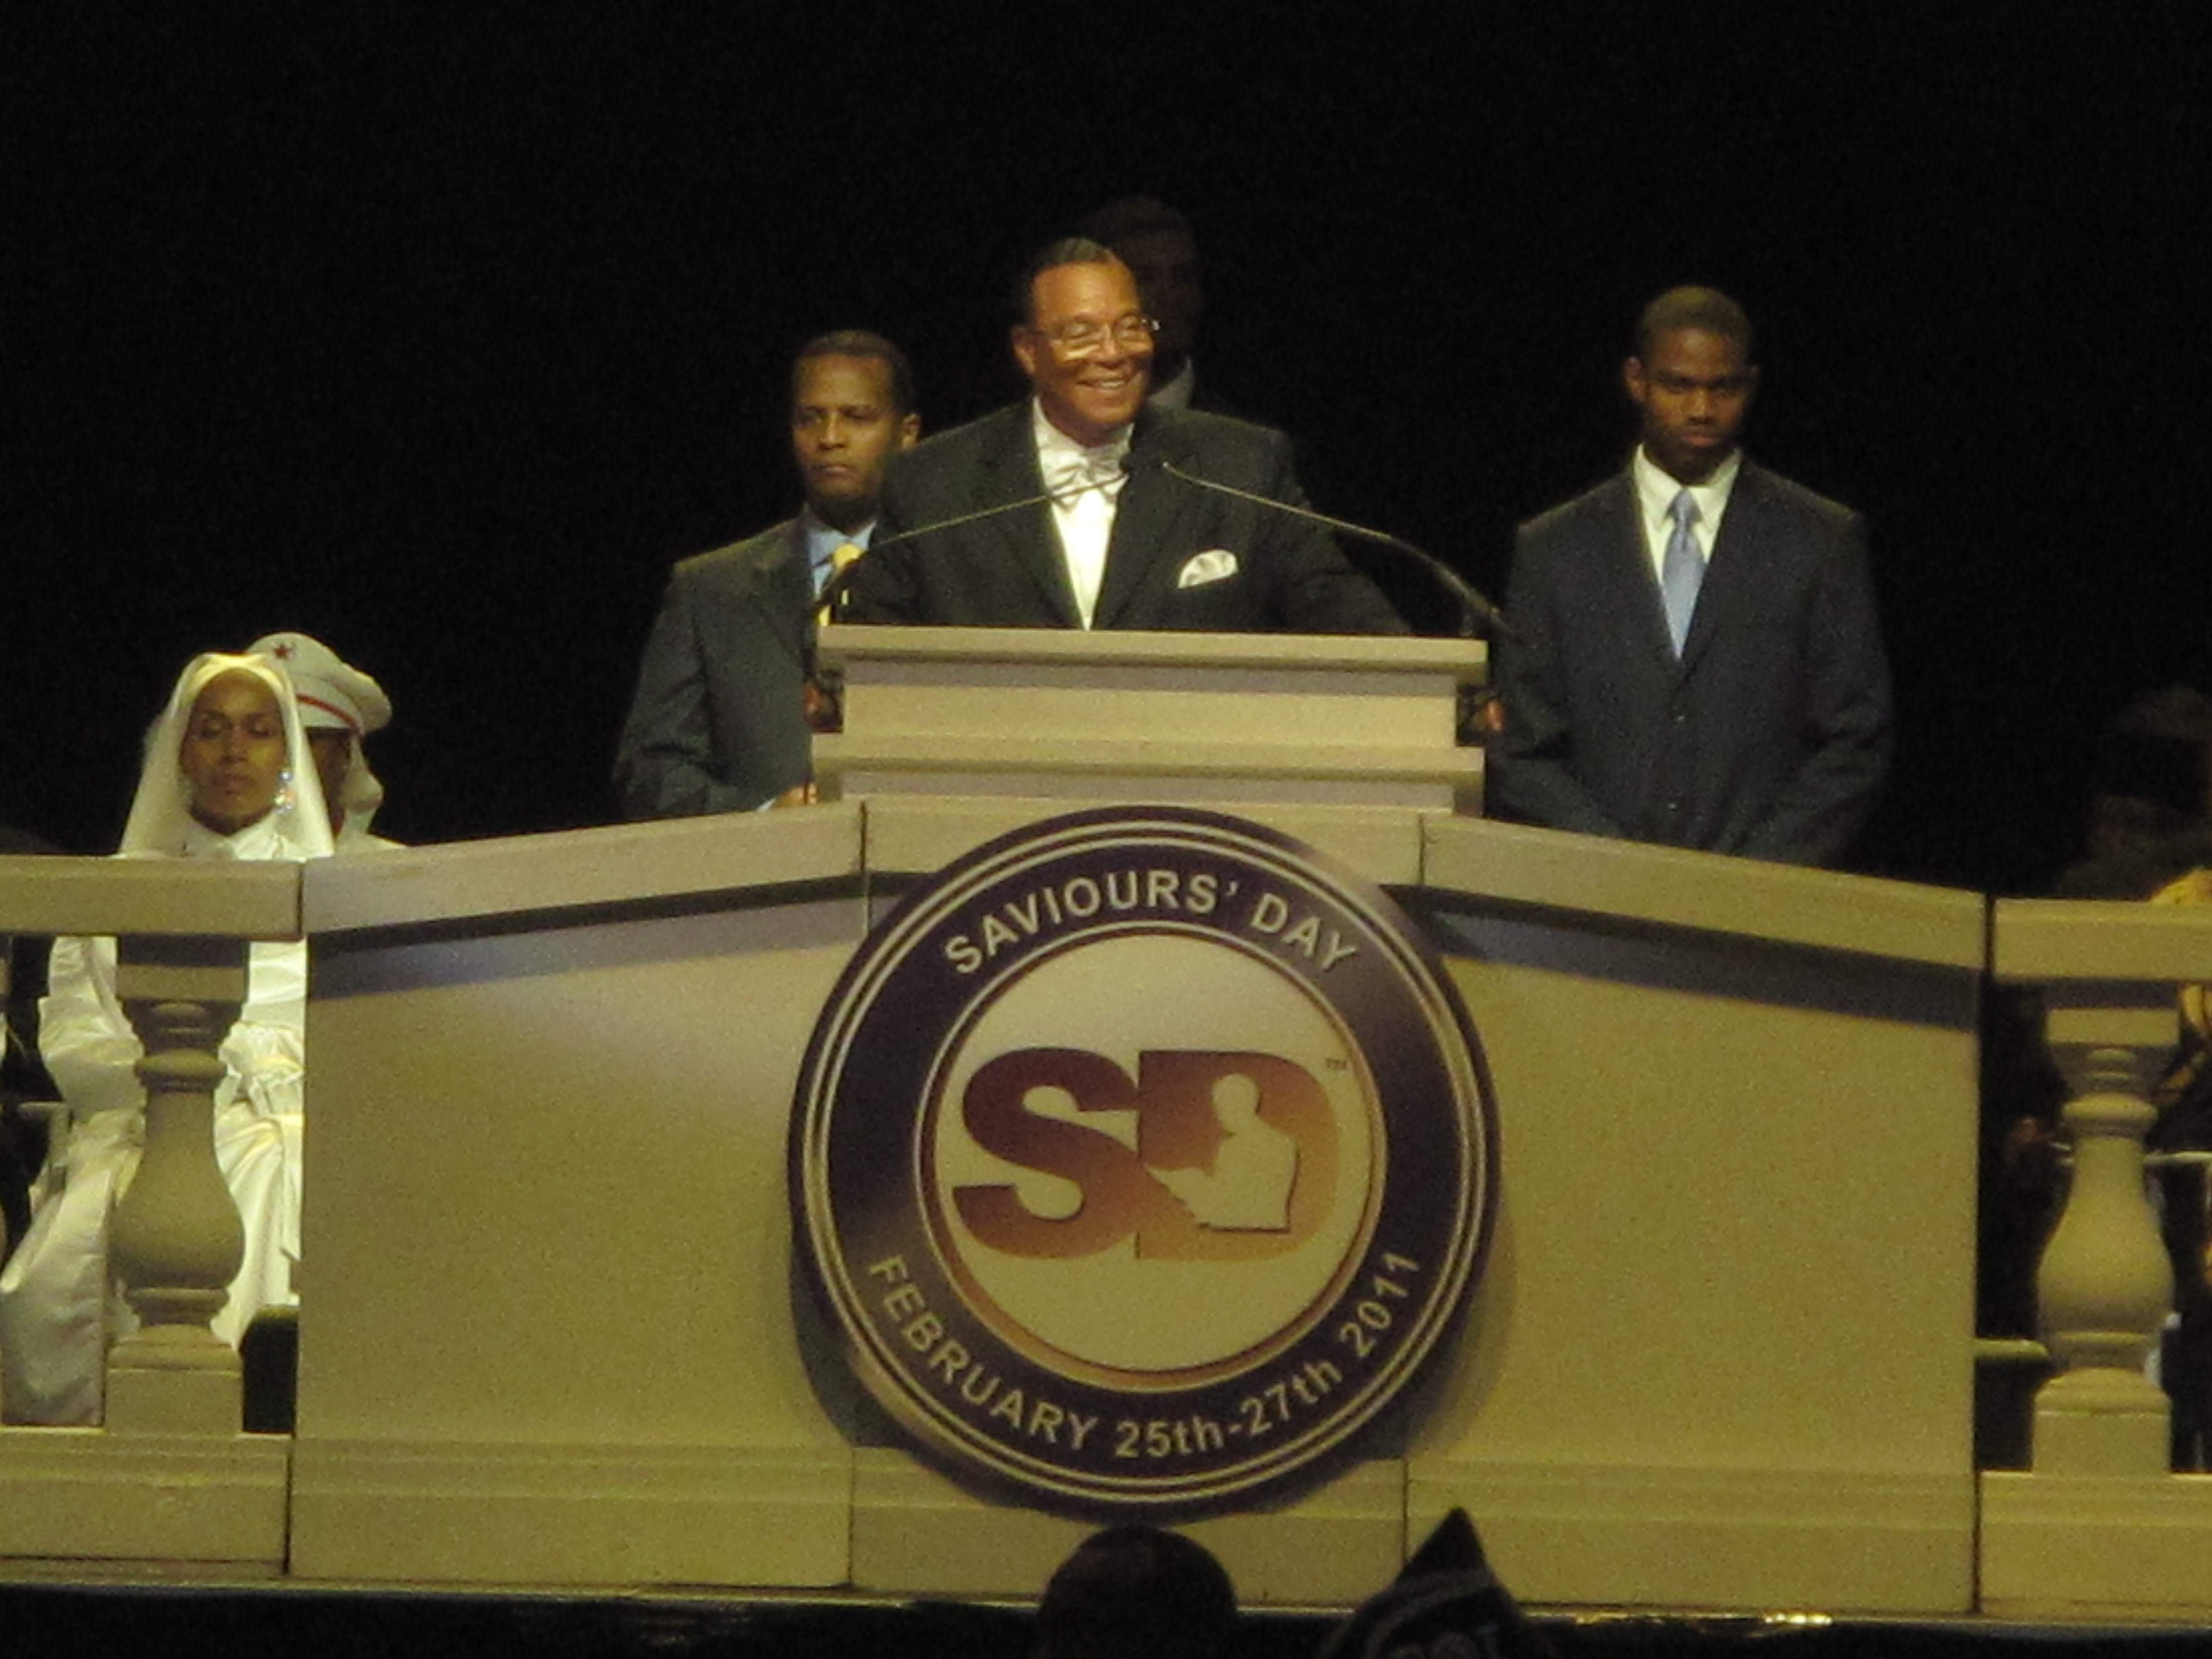 After Responding to Saviours' Day Speech 2011, ADL Chicago ...